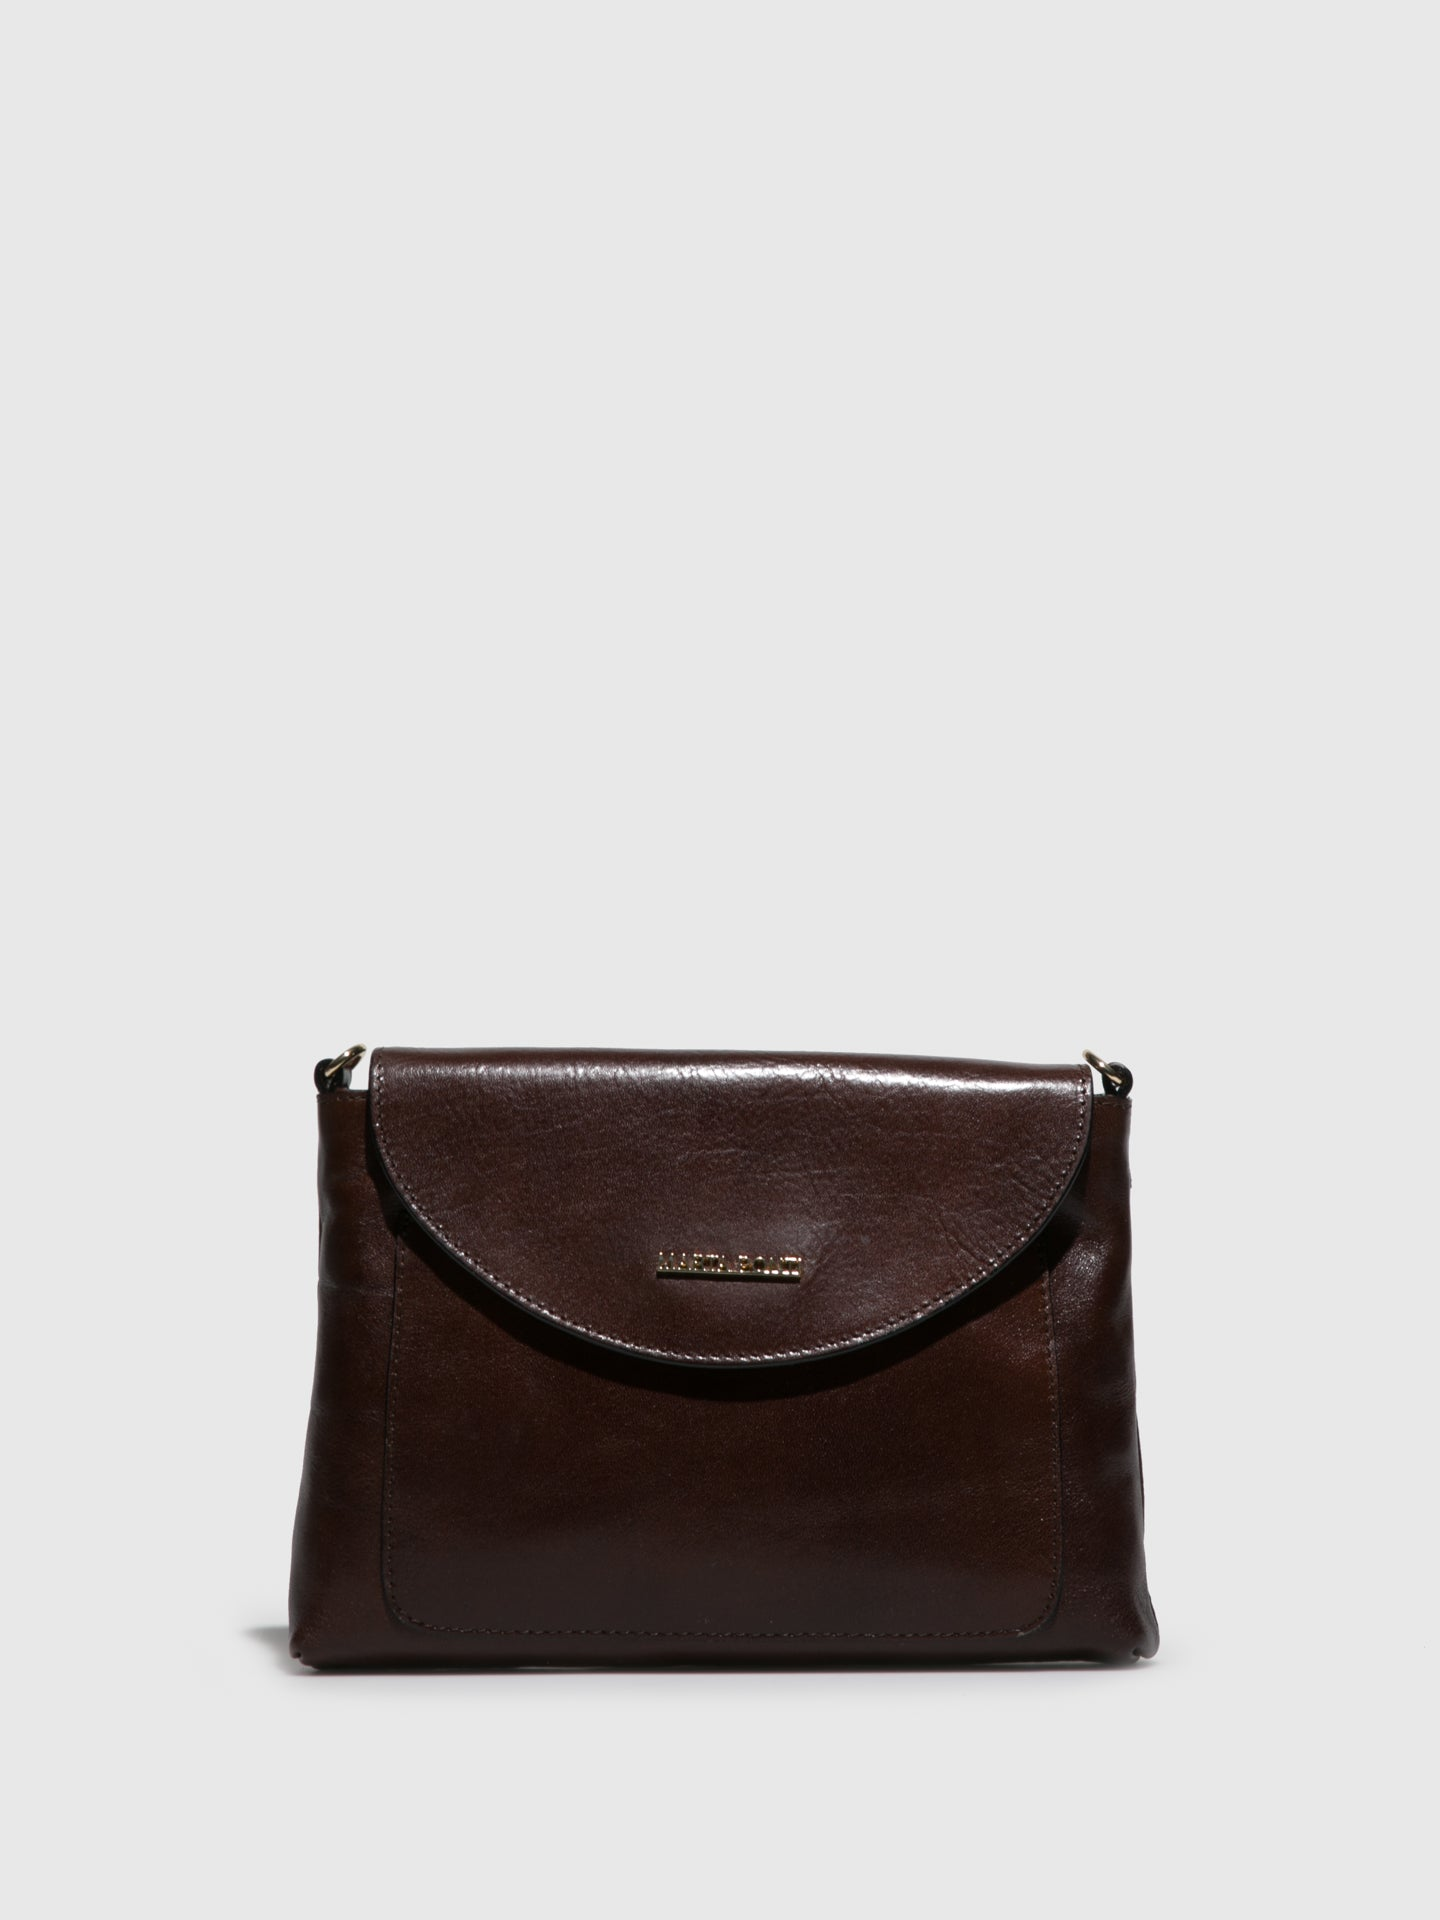 MARTA PONTI Brown Crossbody Bag